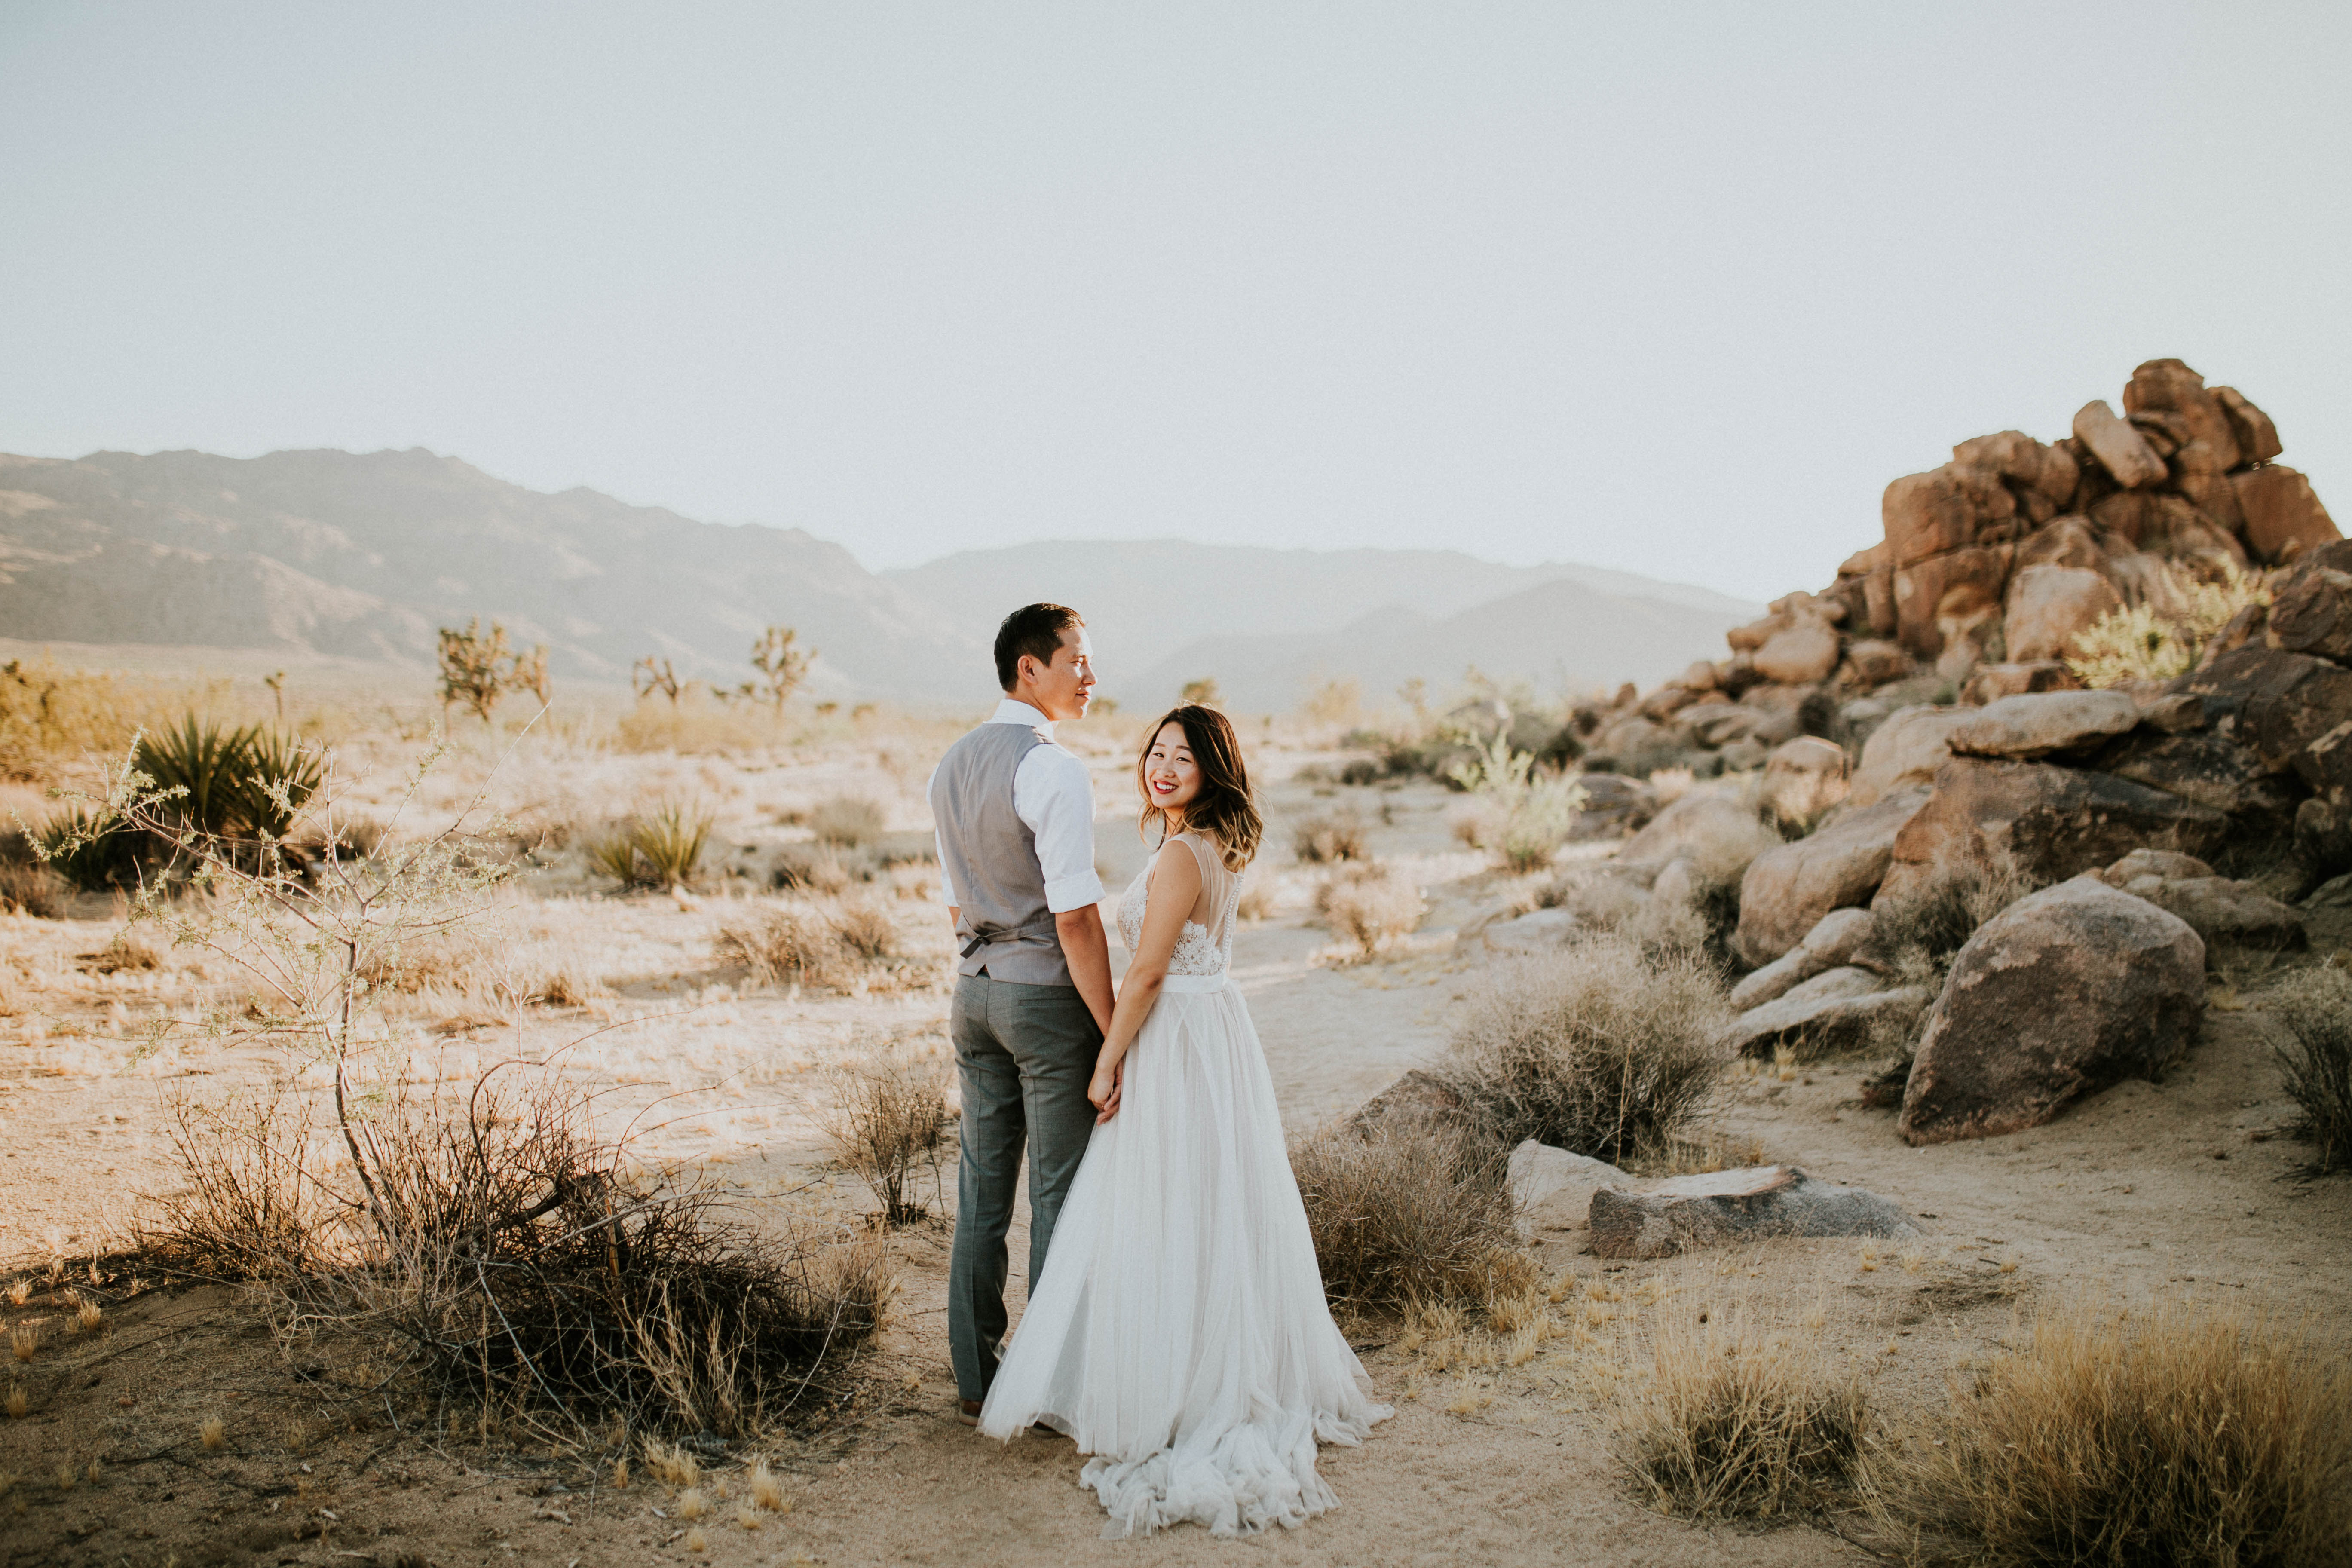 Mandy & Joey Joshua Tree Elopement California Wedding Photographer-166